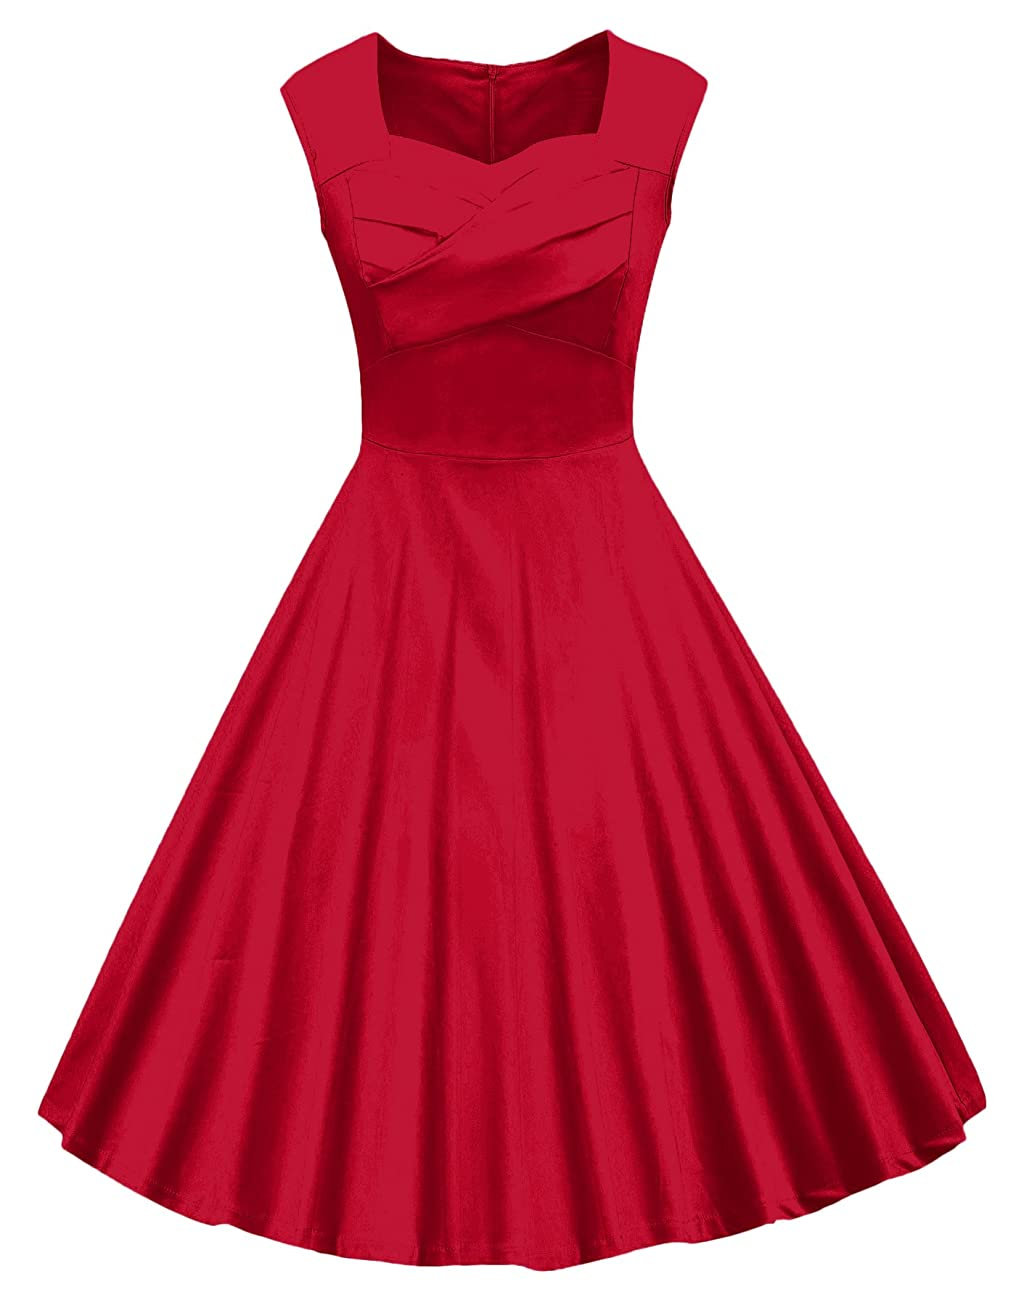 VOGVOG Women's 1950s Retro Vintage Cap Sleeve Party Swing Dress 0